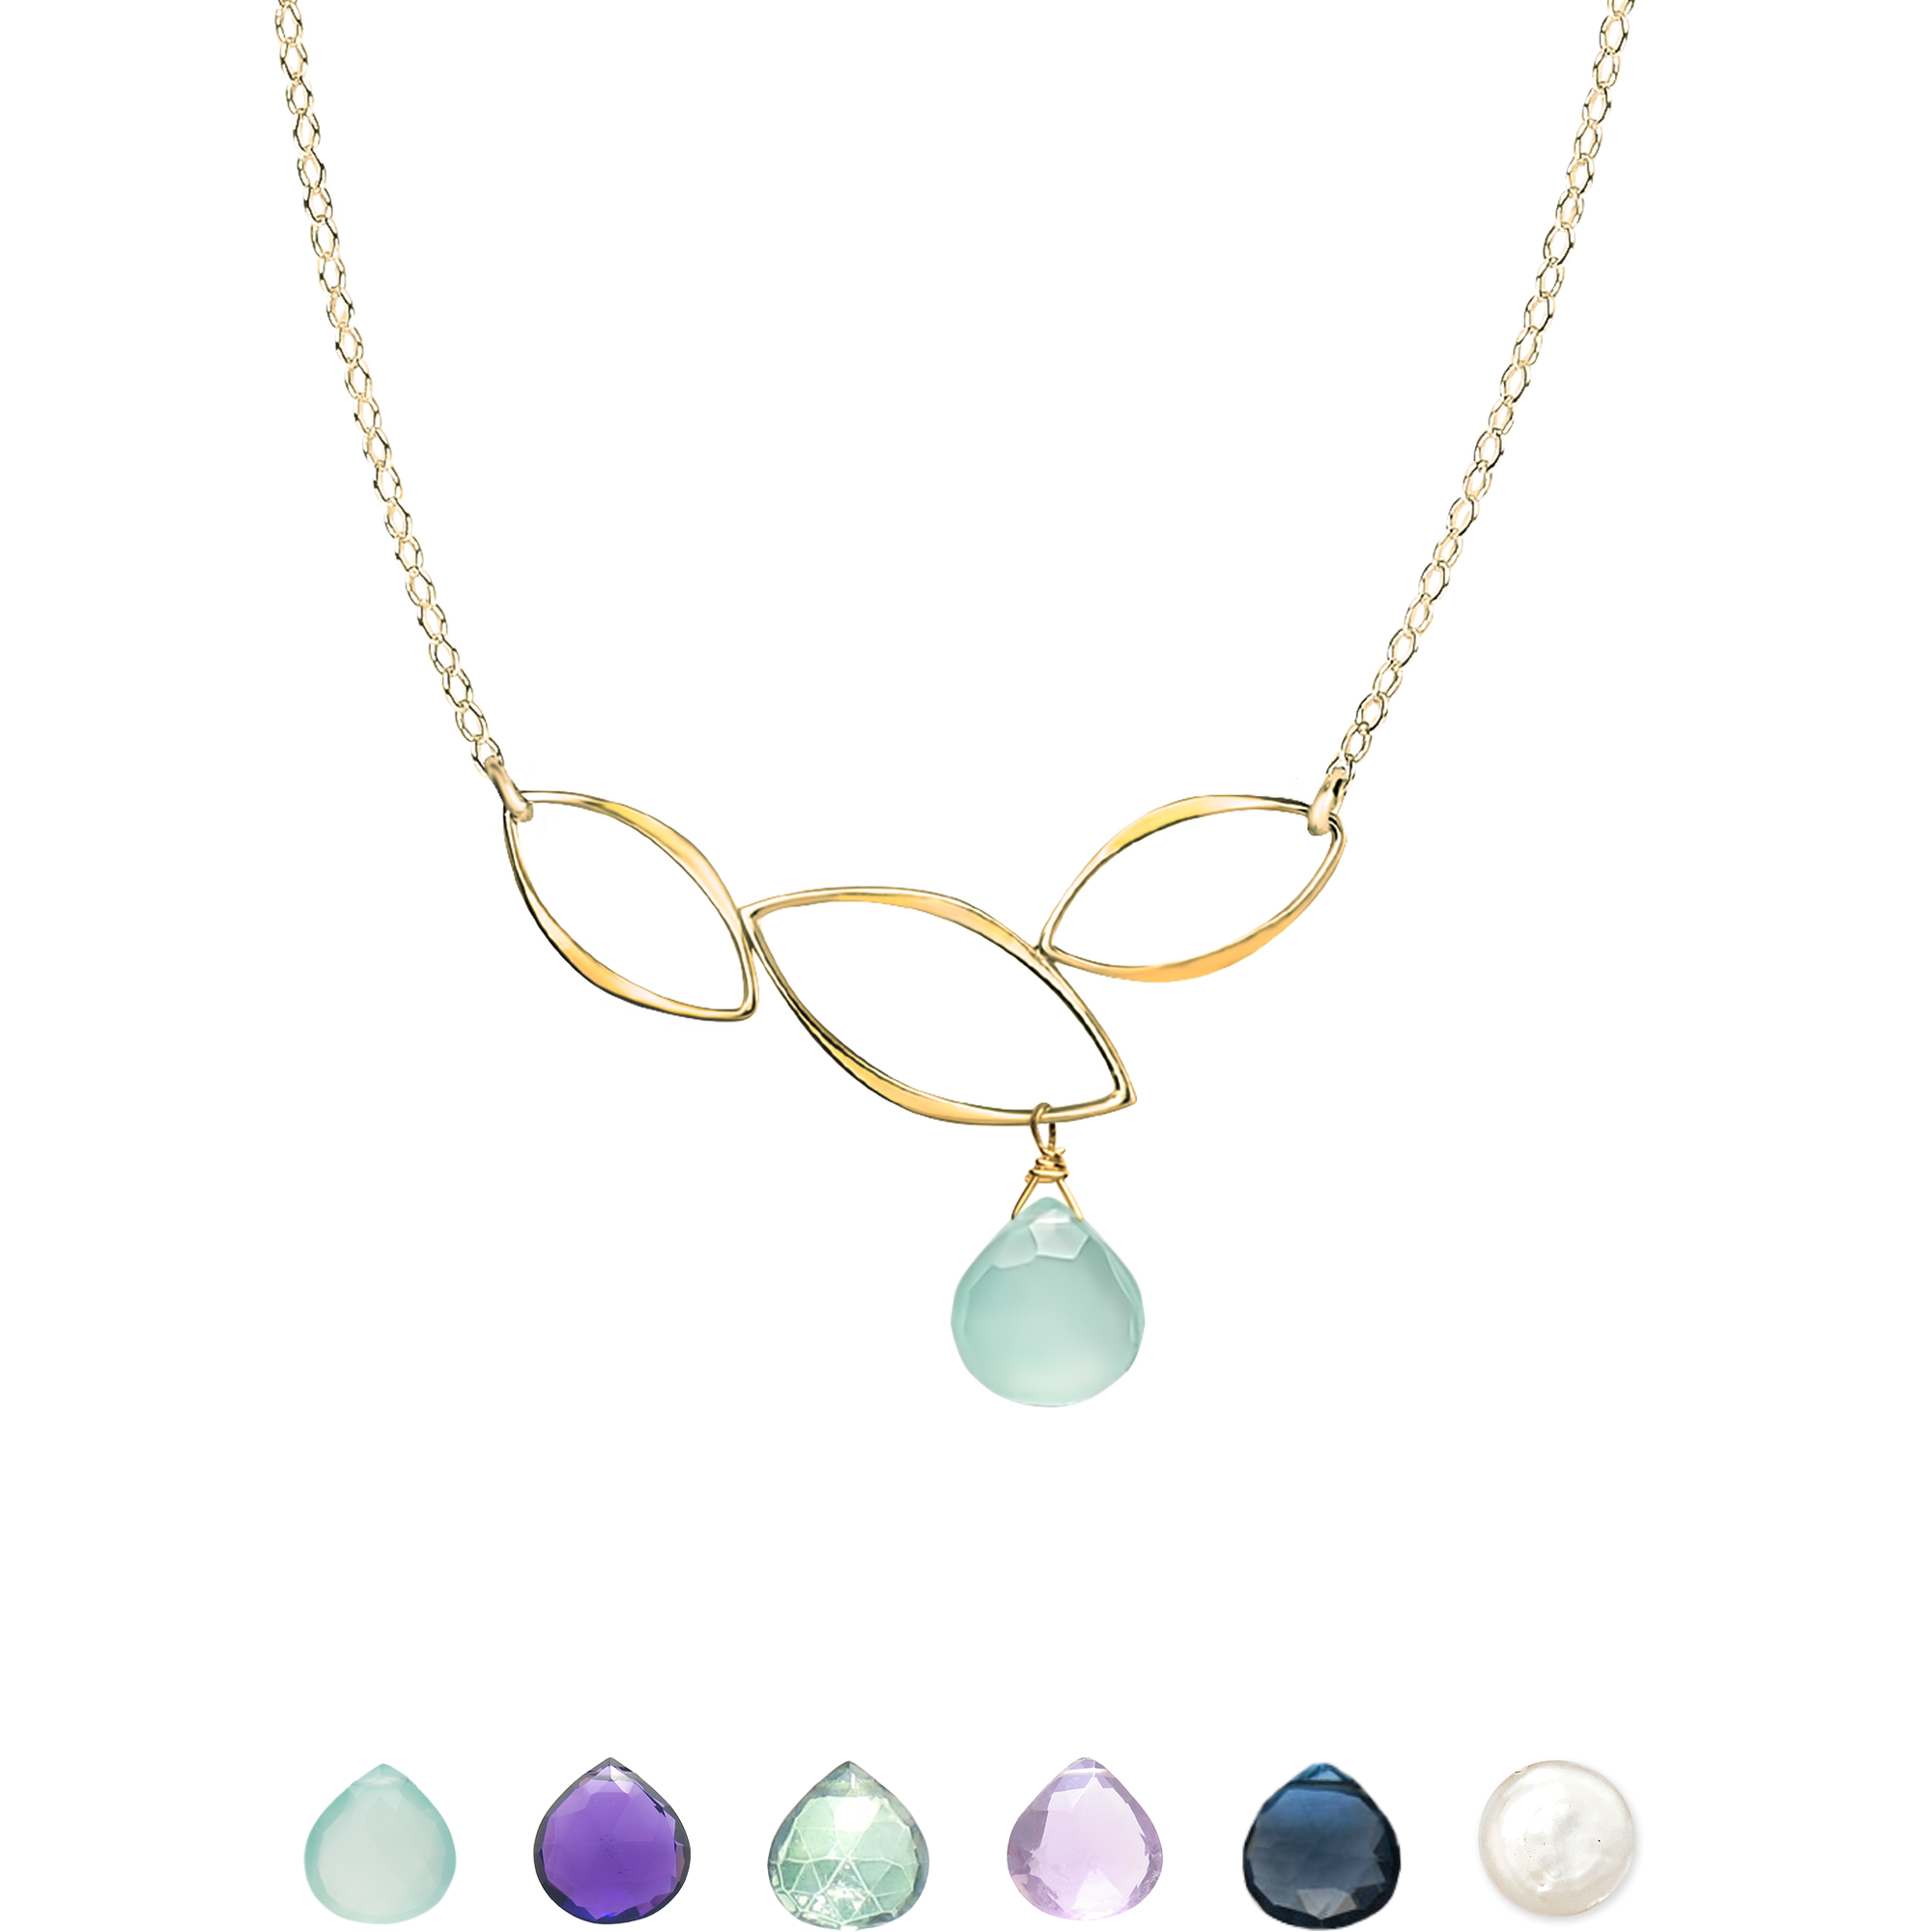 Ella Gold Three Leaf Bar Necklace with Gemstone